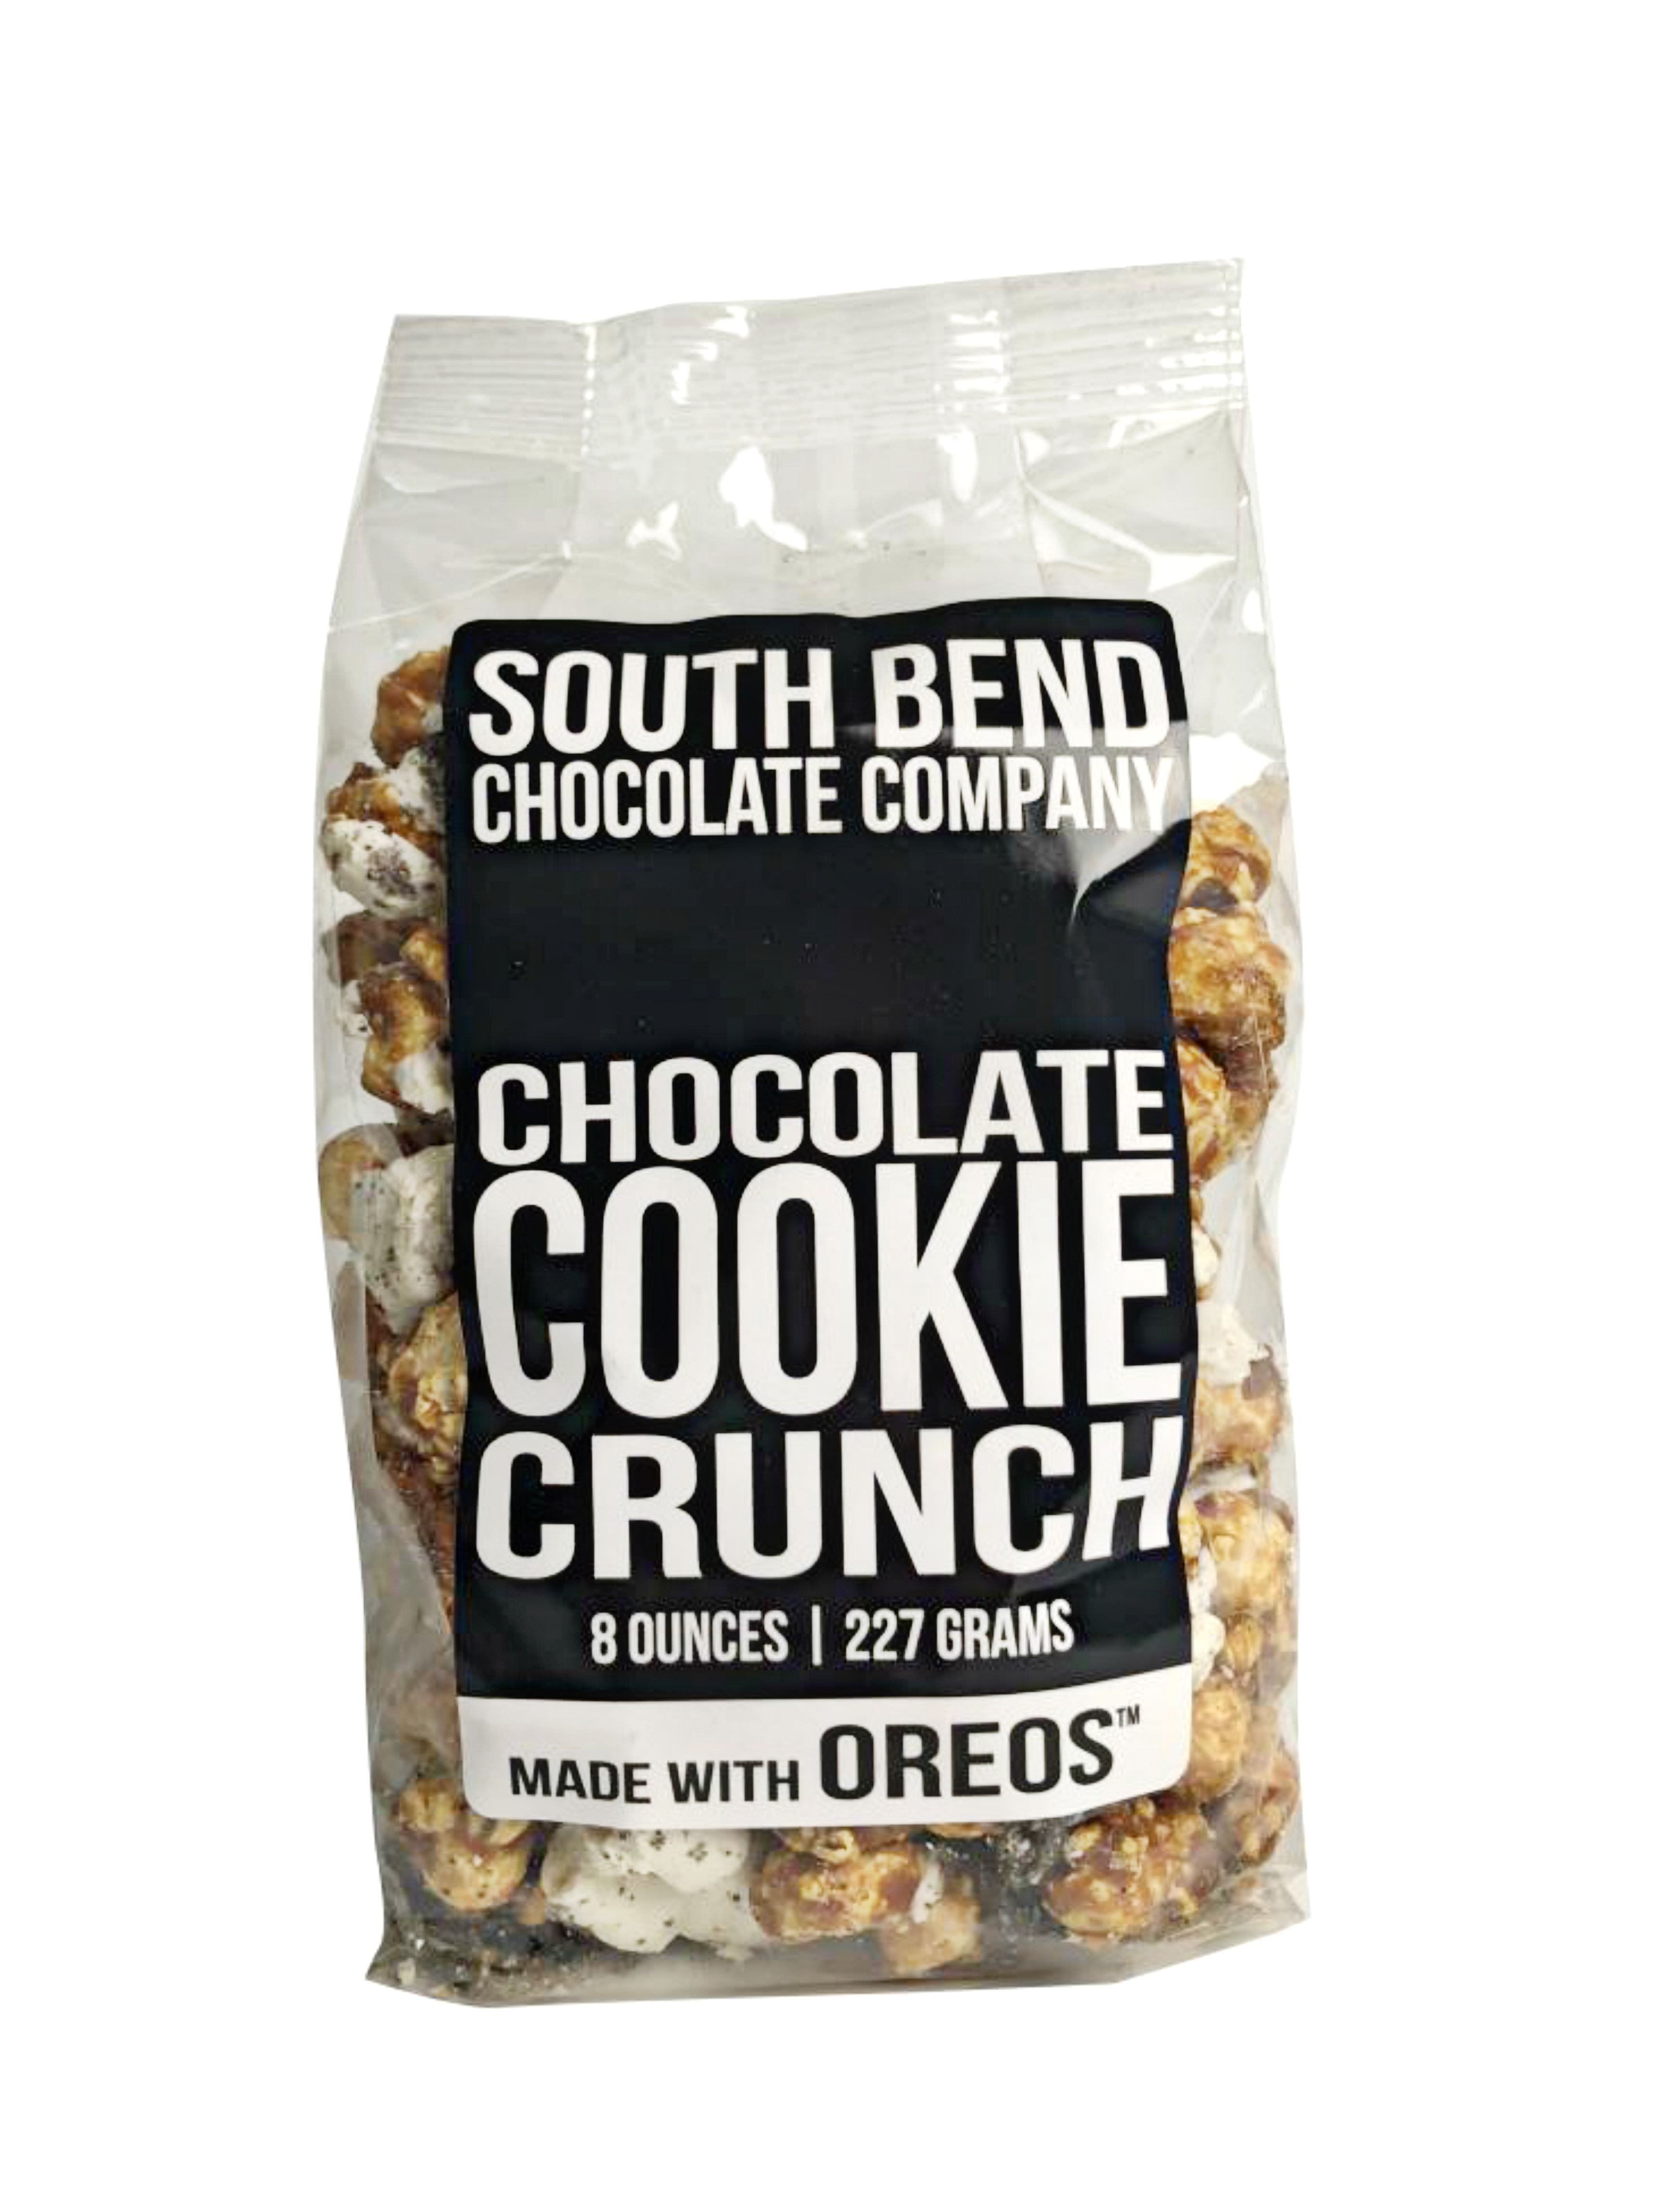 South Bend Chocolate Cookie Crunch Made With Oreos